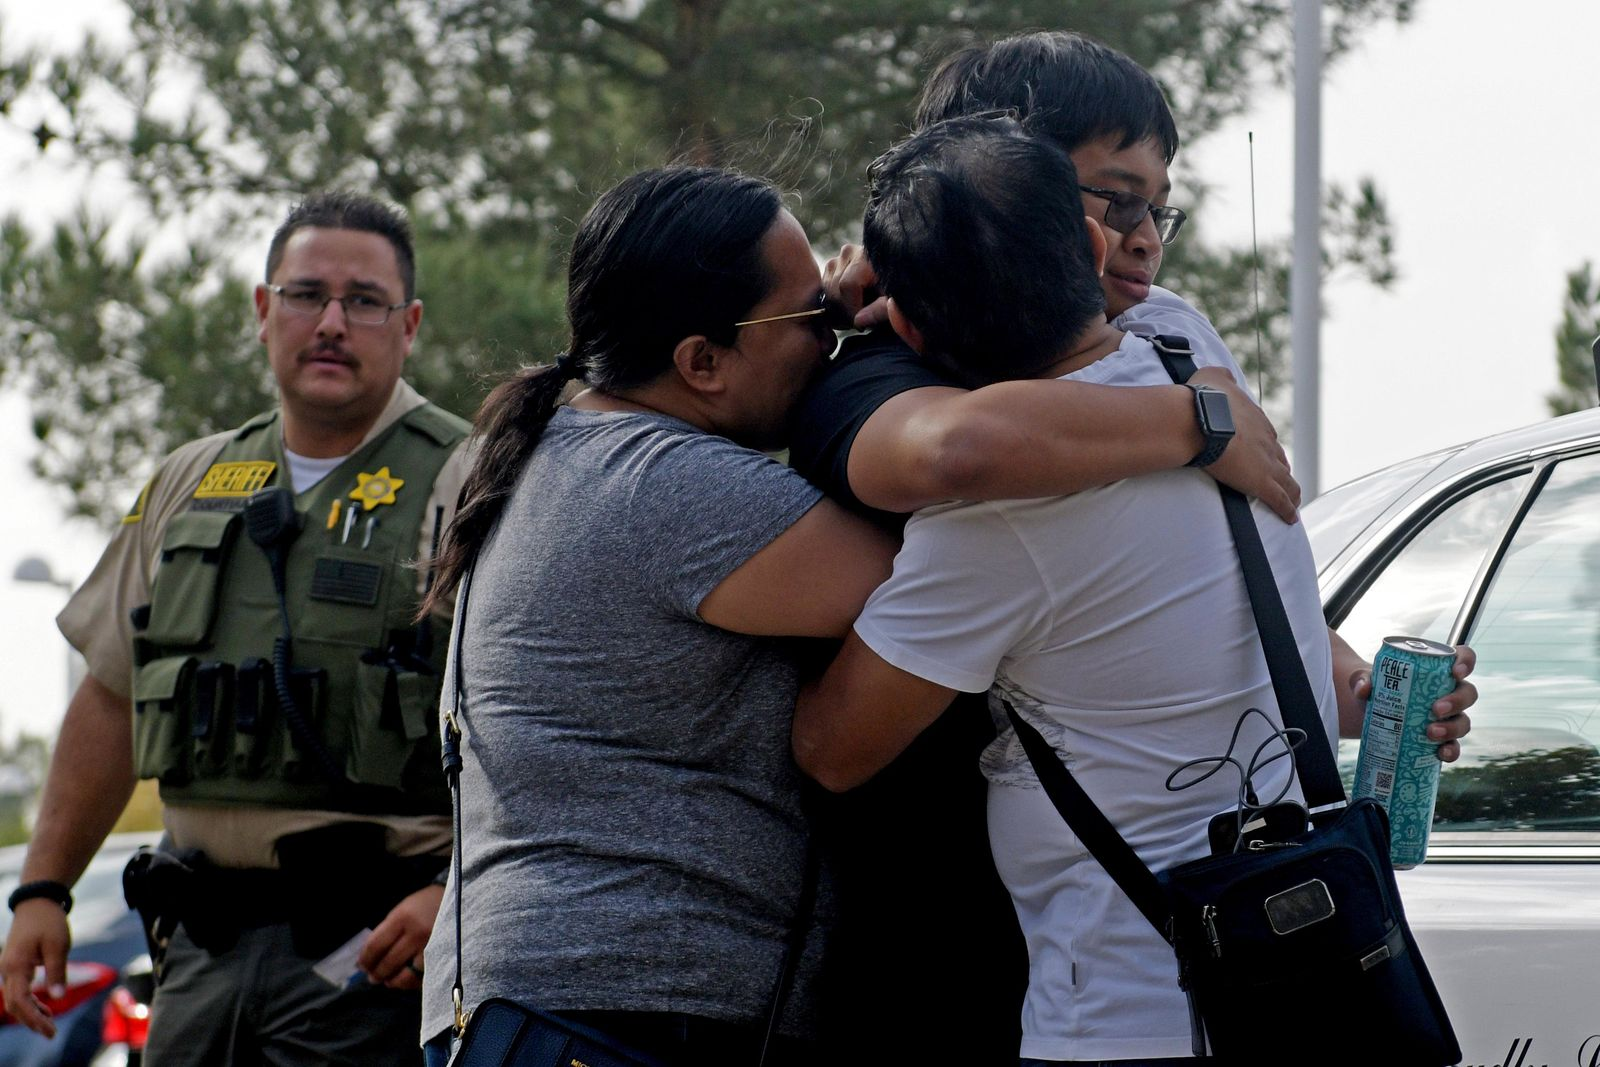 Bernadette and Joy Song Cuan hug their son Karl, a witness to the shooting at Saugus High School, after being interviewed by law enforcement on Thursday, Nov. 14, 2019 in Santa Clarita, Calif. The shooting occurred around 7:30 a.m. at the high school, about 30 miles northwest of downtown Los Angeles (AP Photo by Christian Monterrosa)